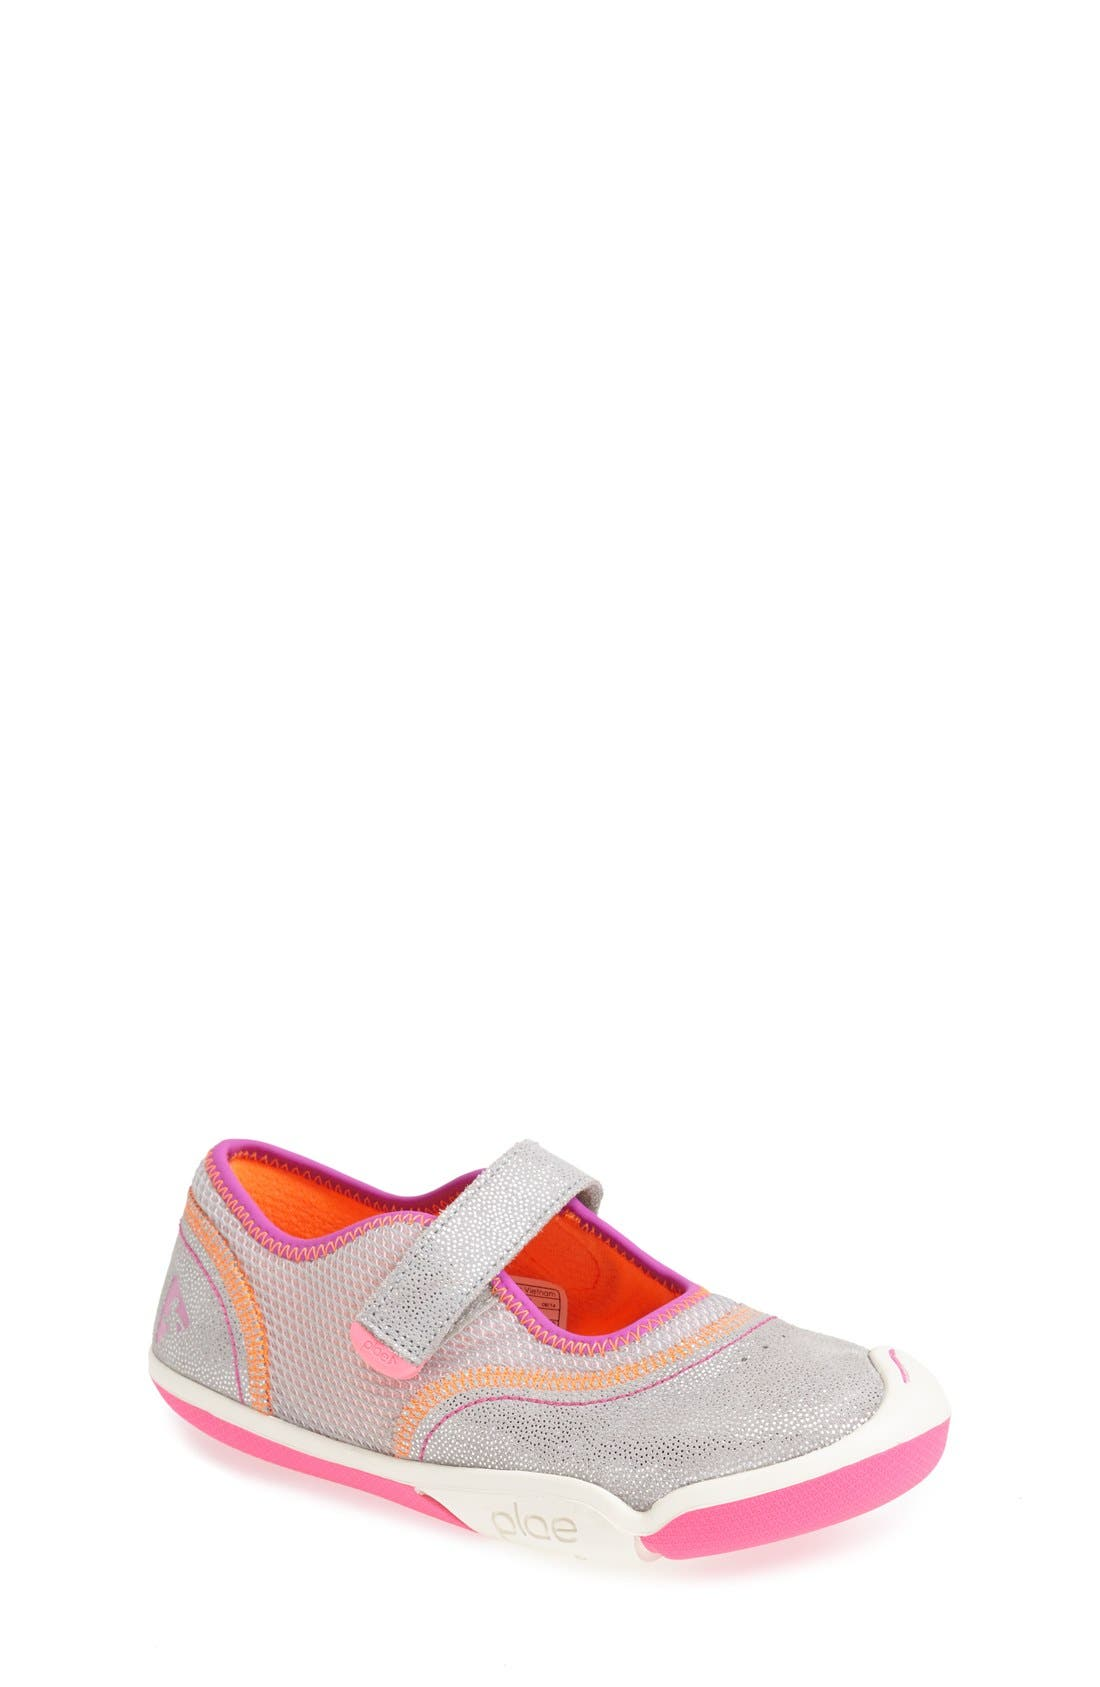 Emme Customizable Mary Jane,                             Main thumbnail 1, color,                             SILVER/ PINK